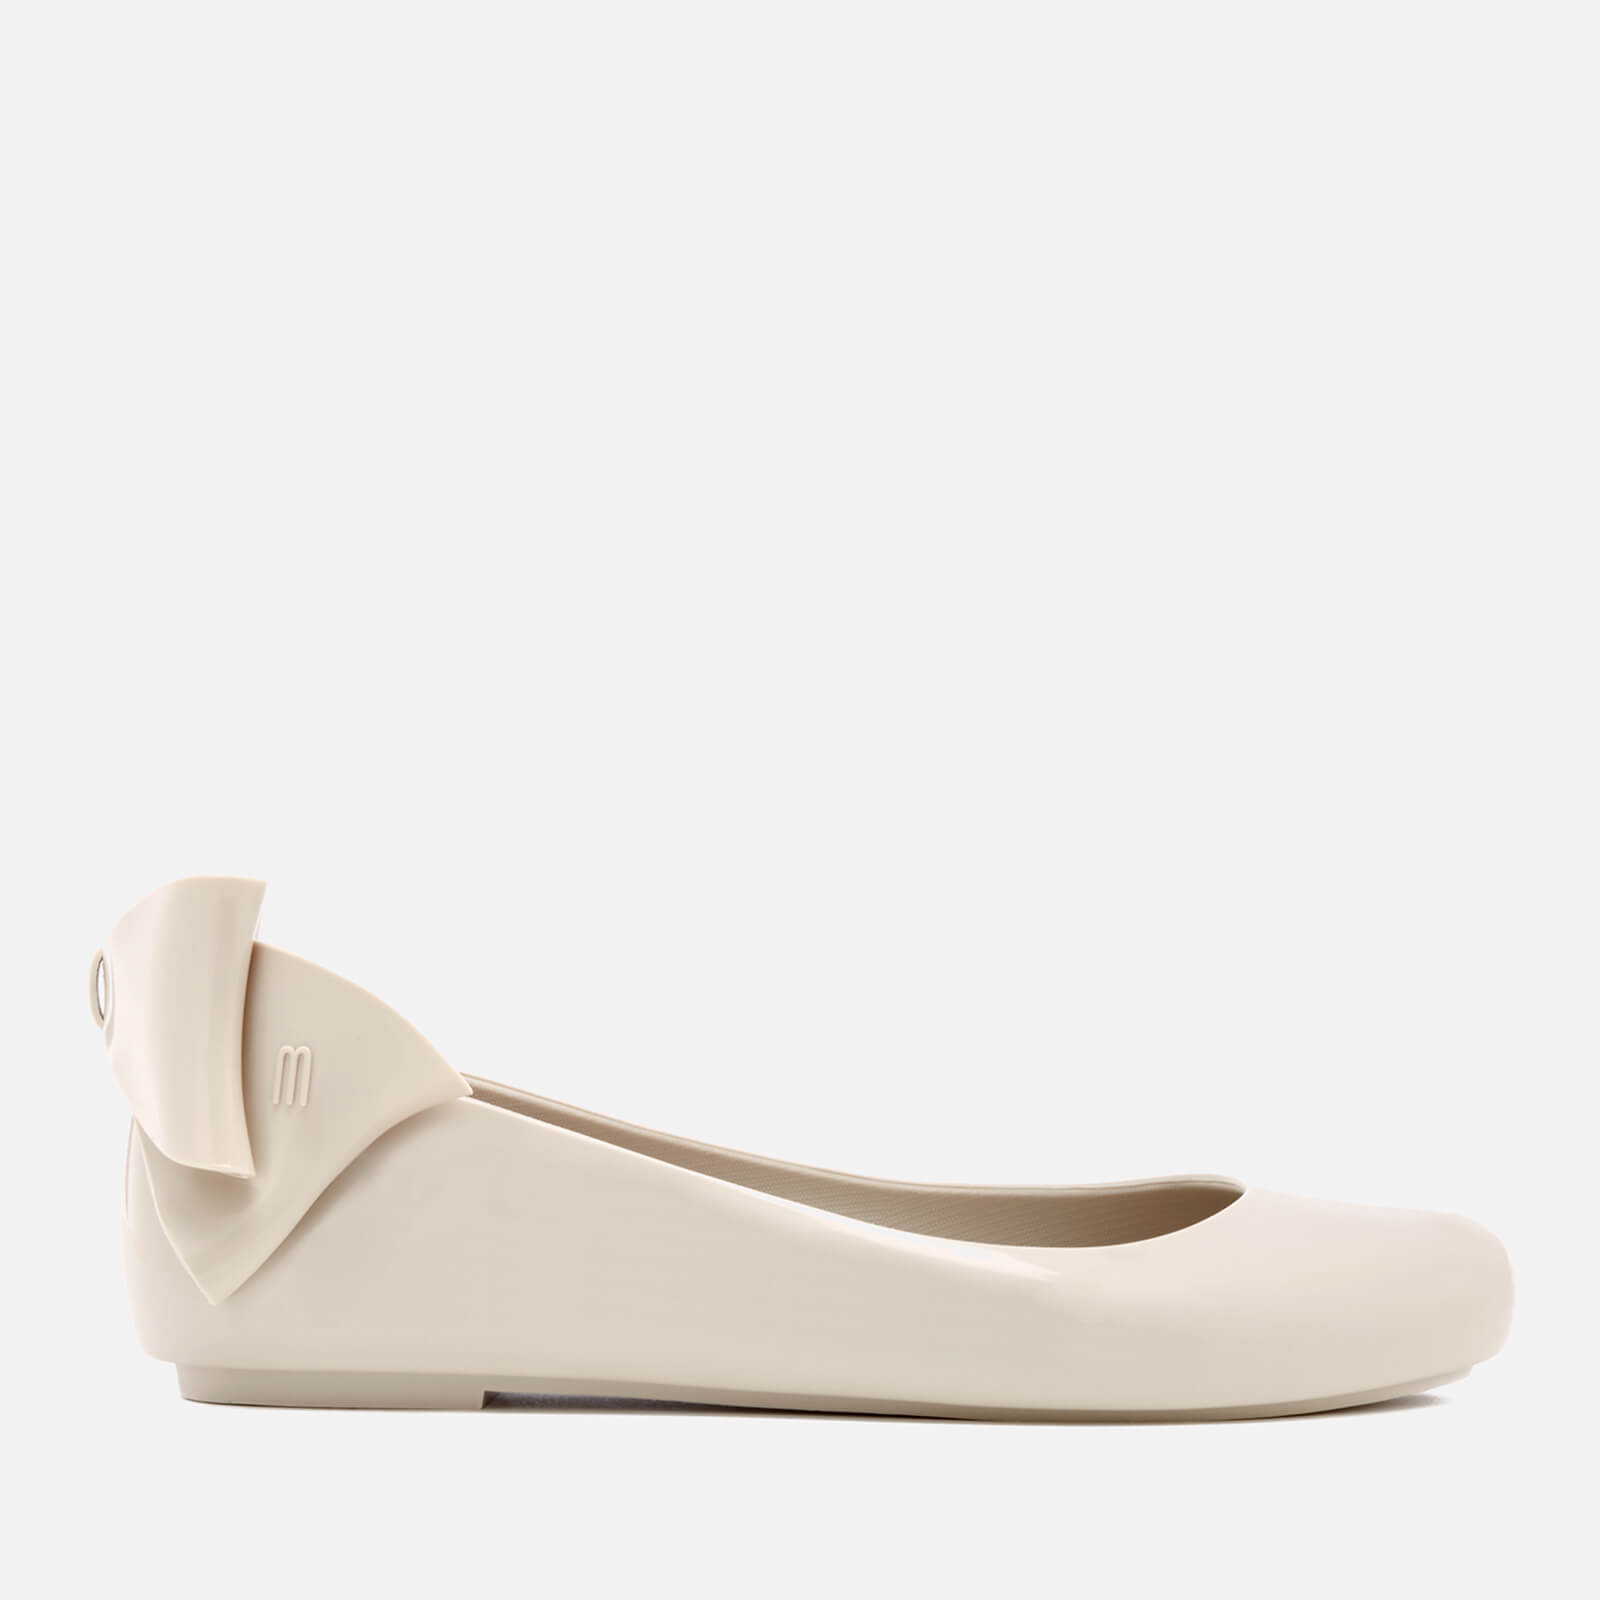 8dc0401f4f Melissa Women's Space Love Gift Bow Ballet Flats - Ivory